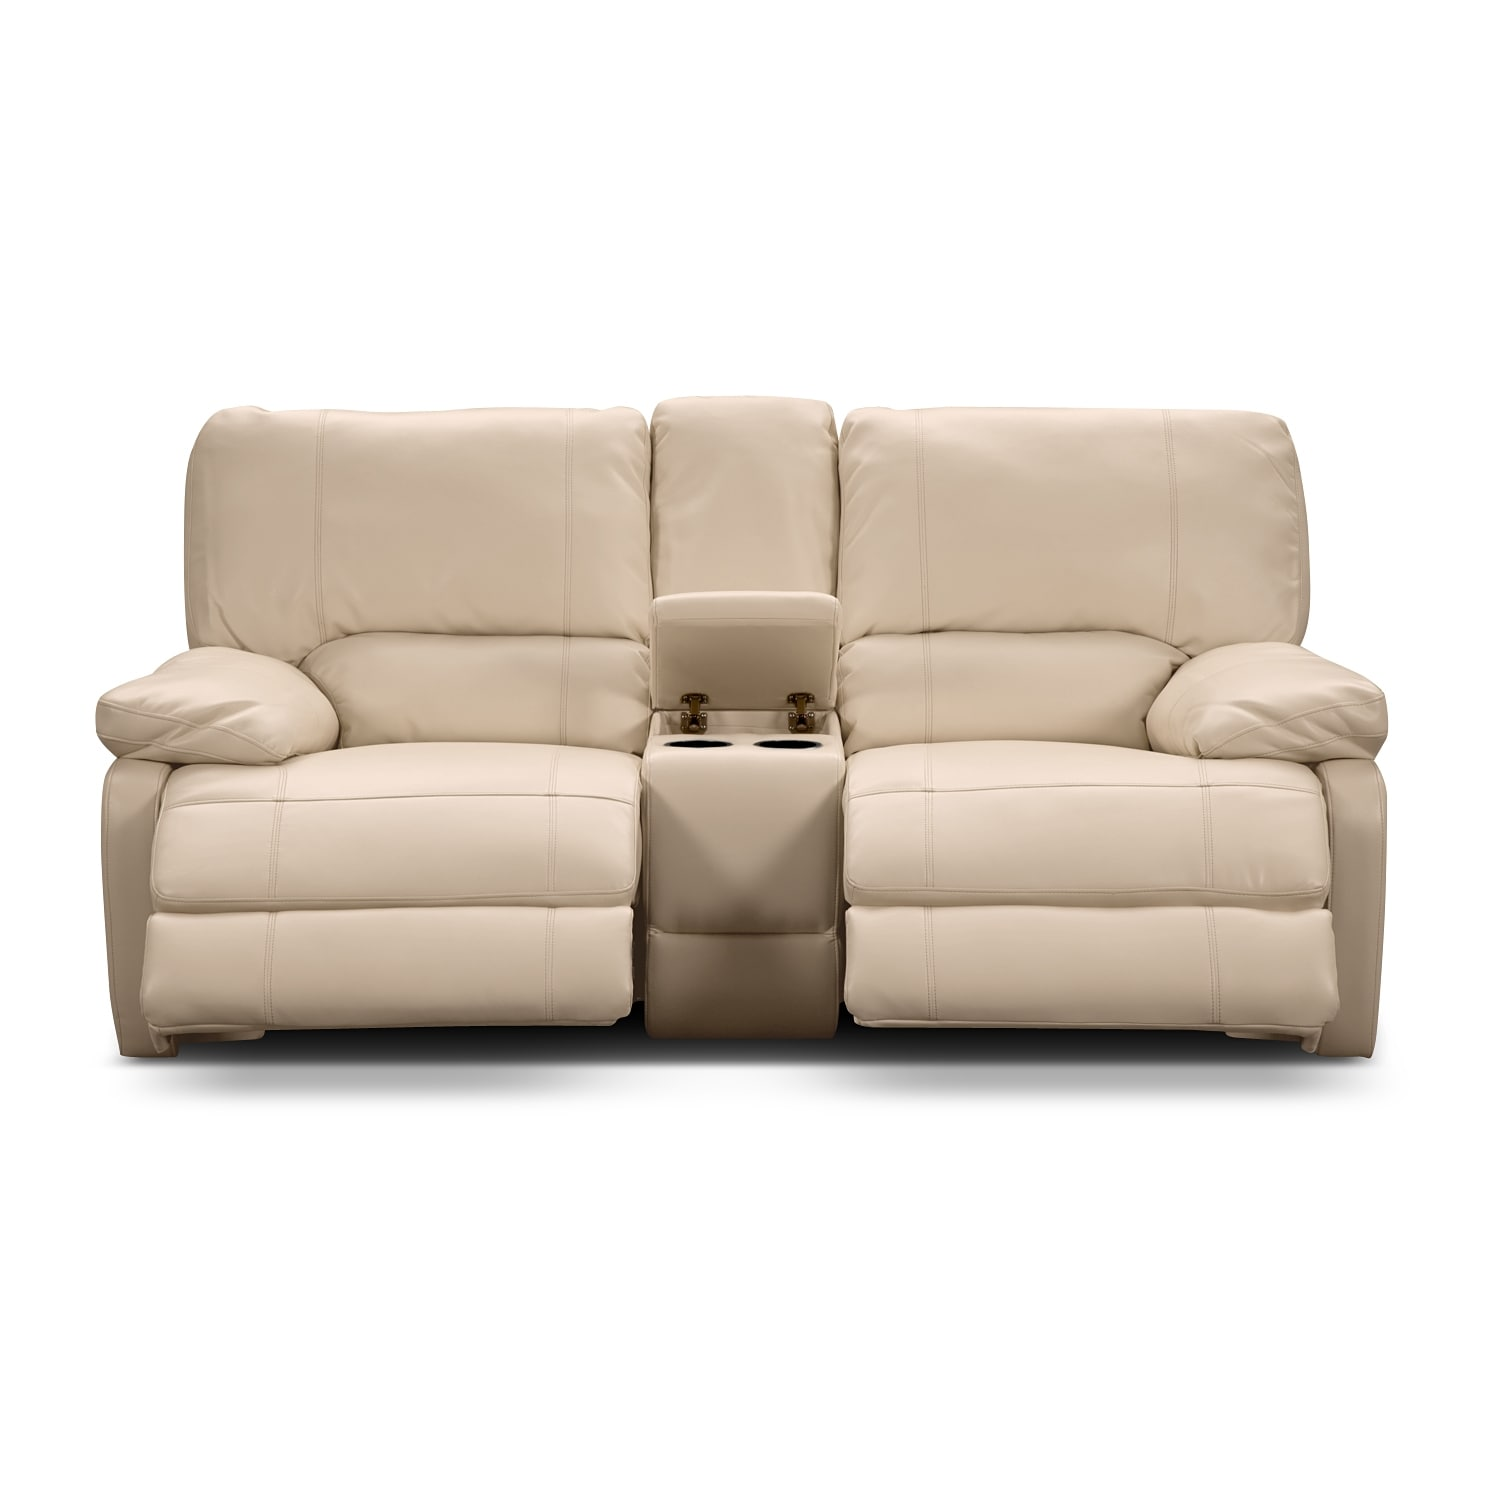 Coronado leather power reclining loveseat value city furniture Leather loveseat recliners